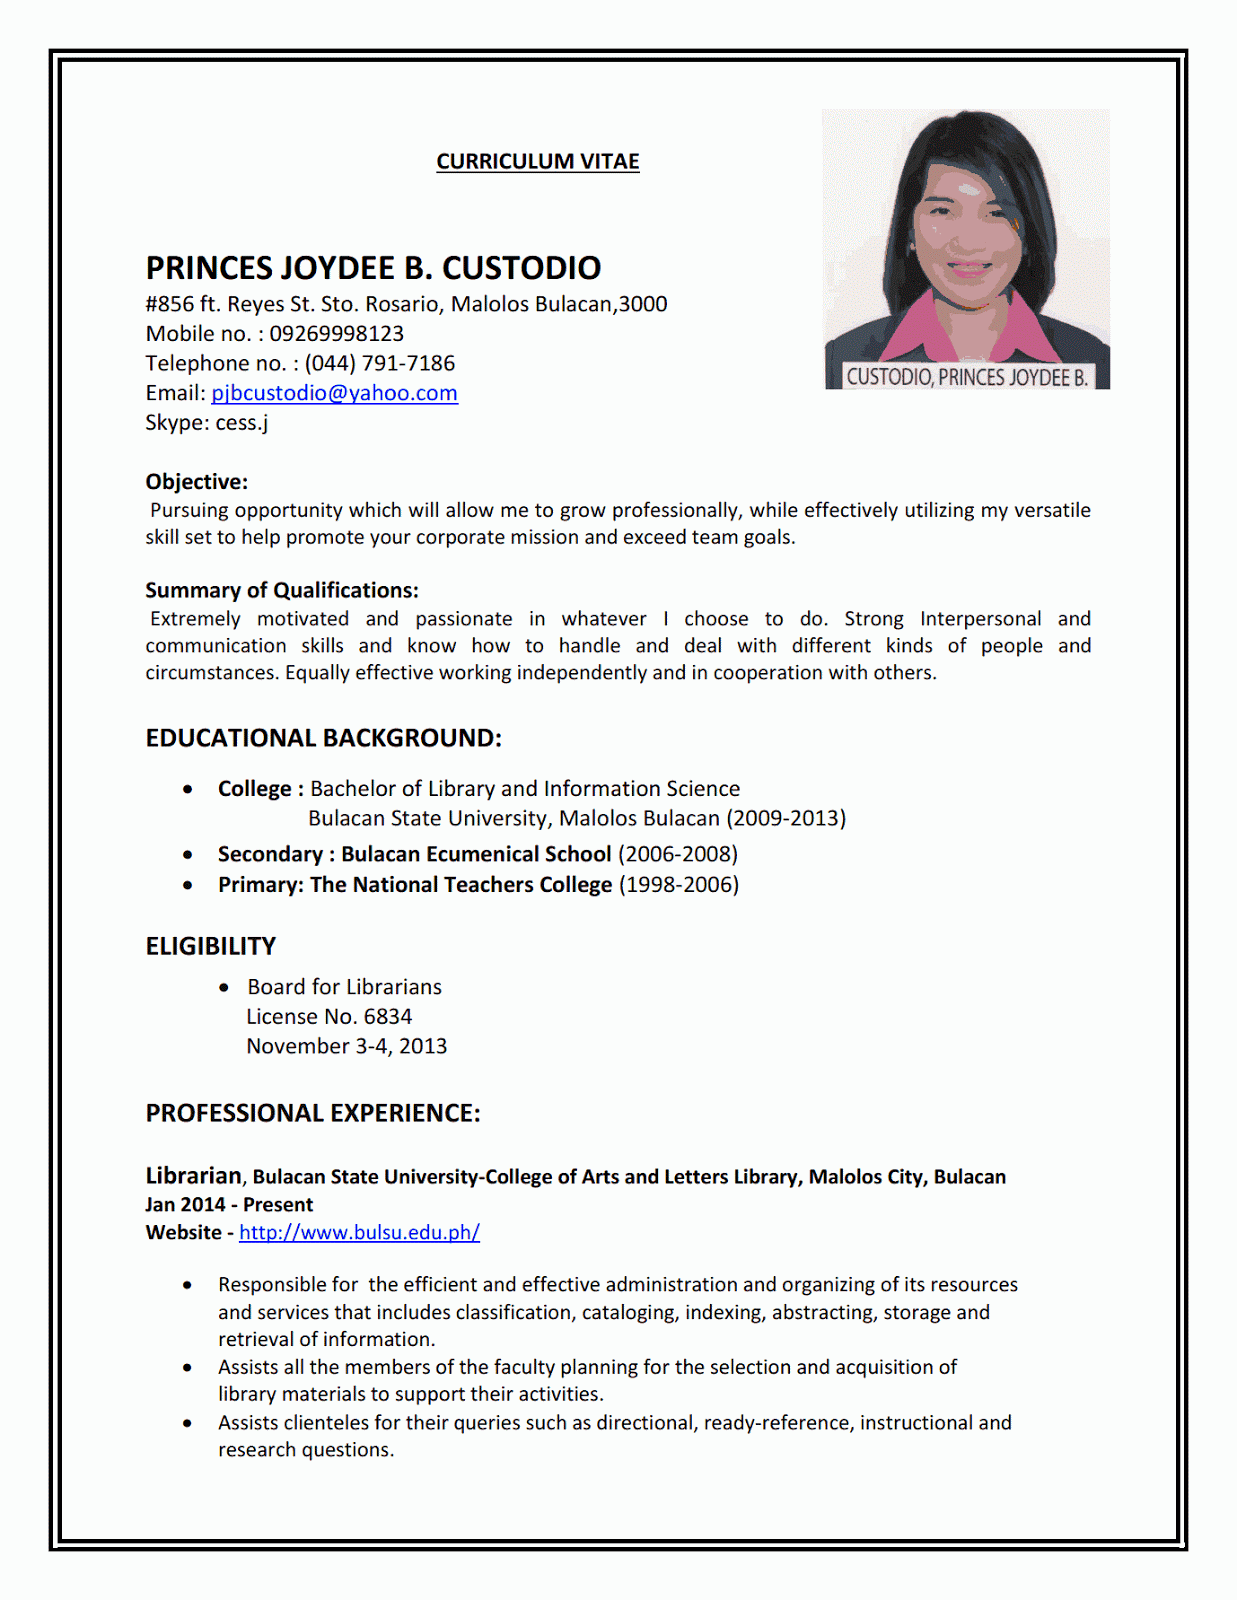 Exceptional Resume Sample First Job | Sample Resumes Throughout Student Resume Examples First Job